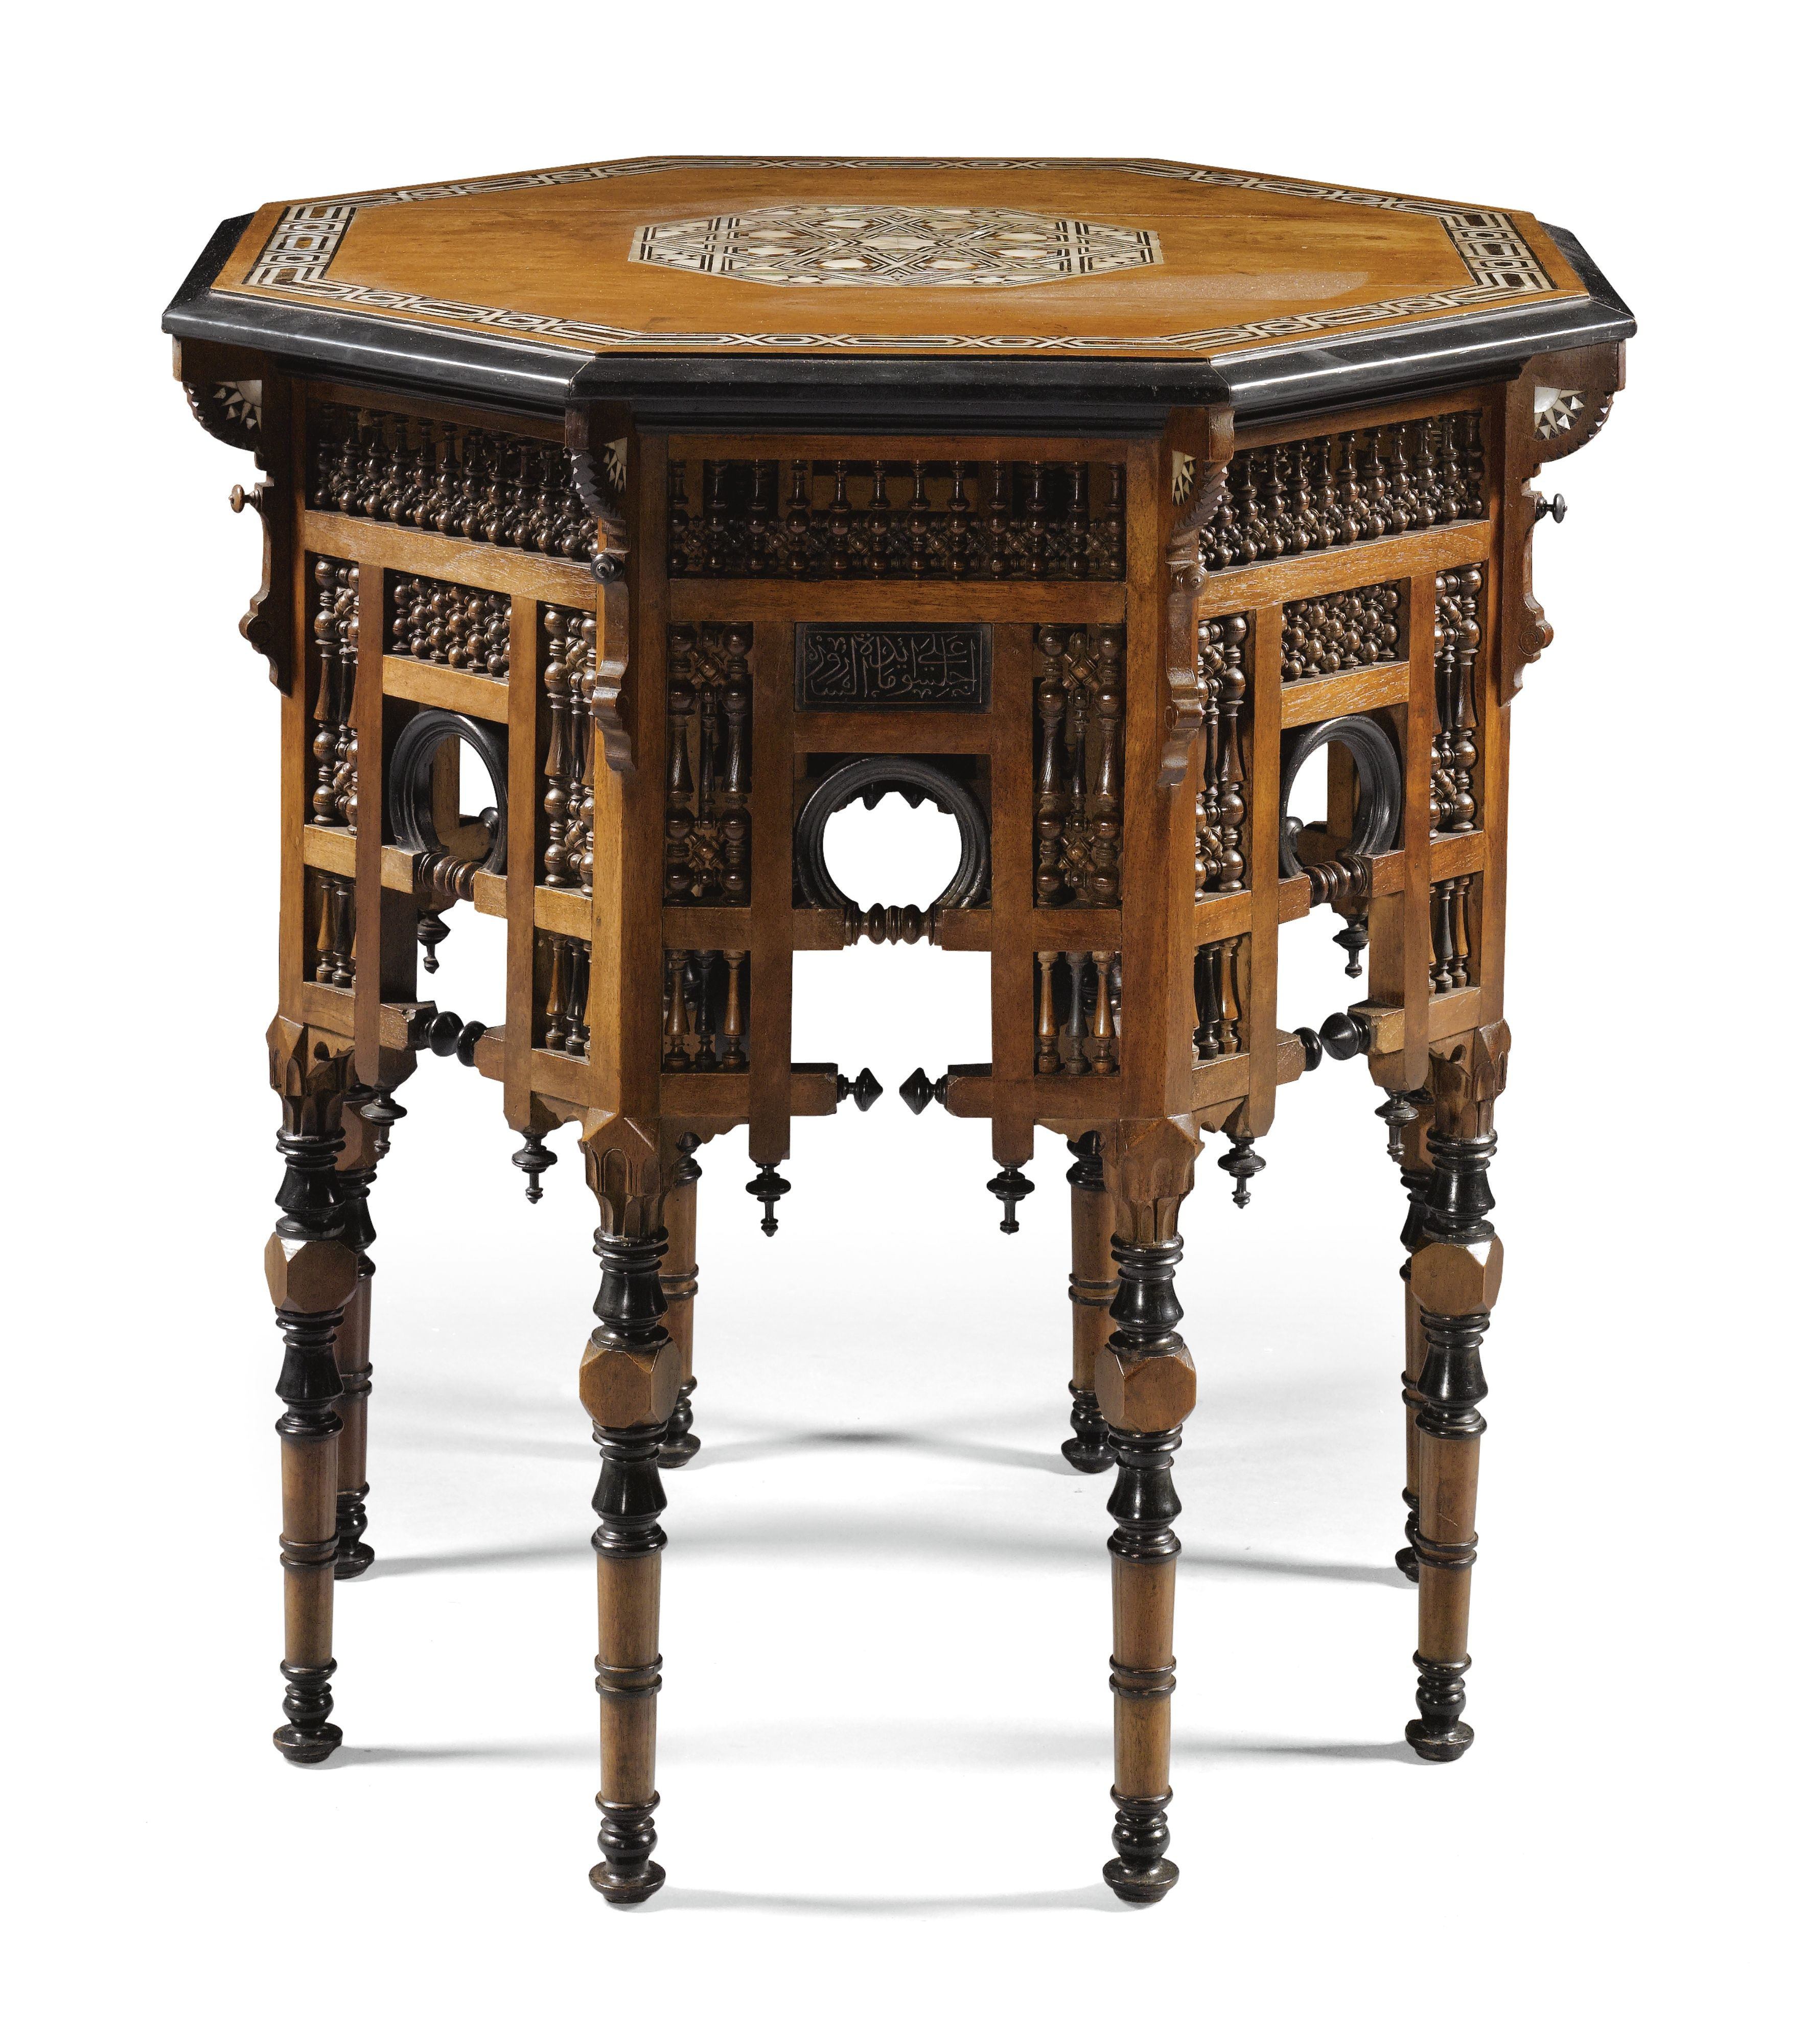 An Ottoman Tortoiseshell And Mother Of Pearl Inlaid Table